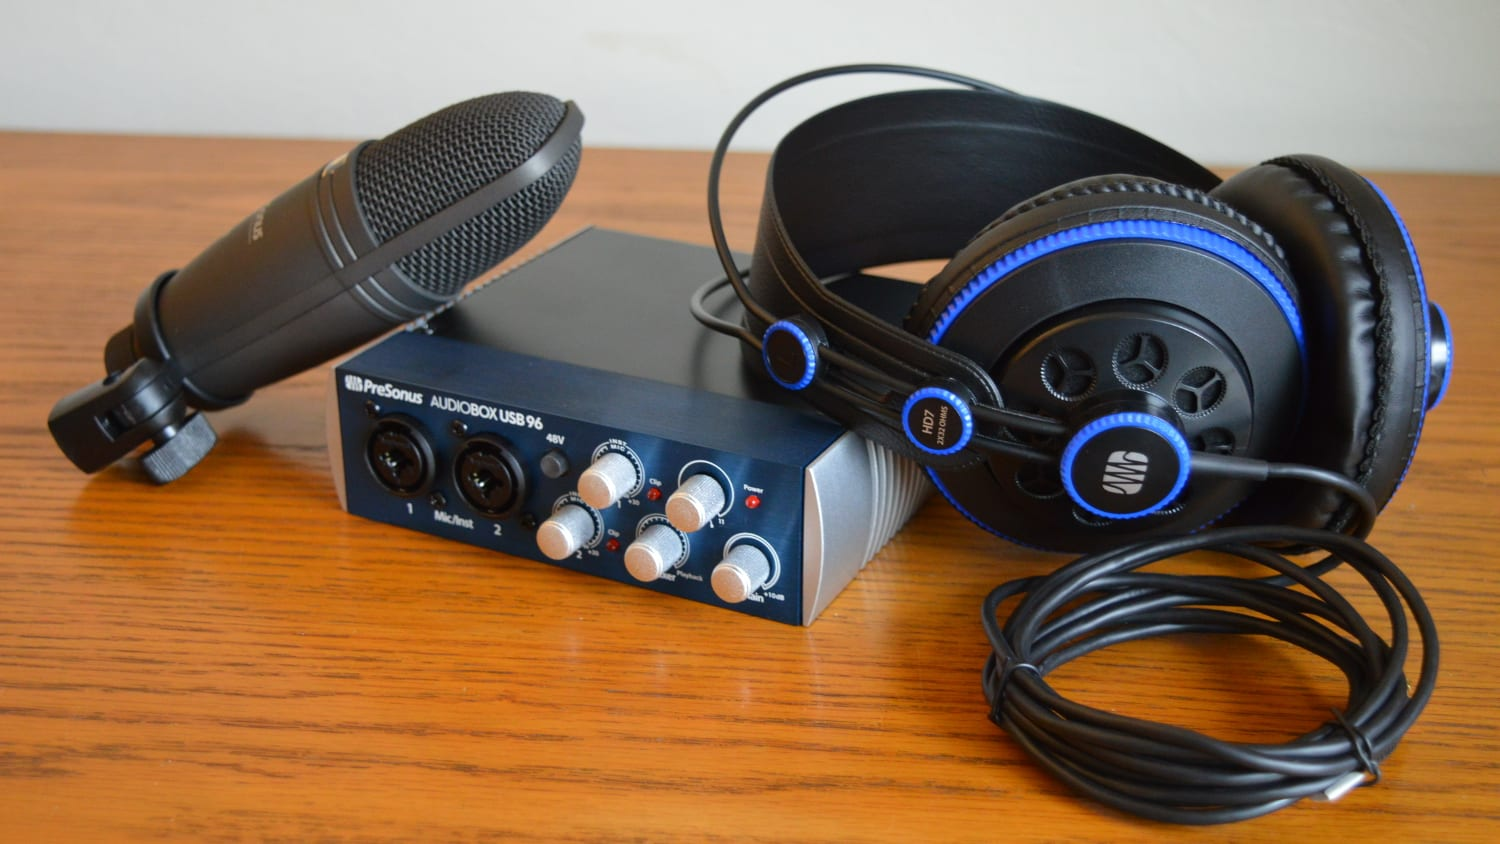 PreSonus AudioBox USB 96 Included